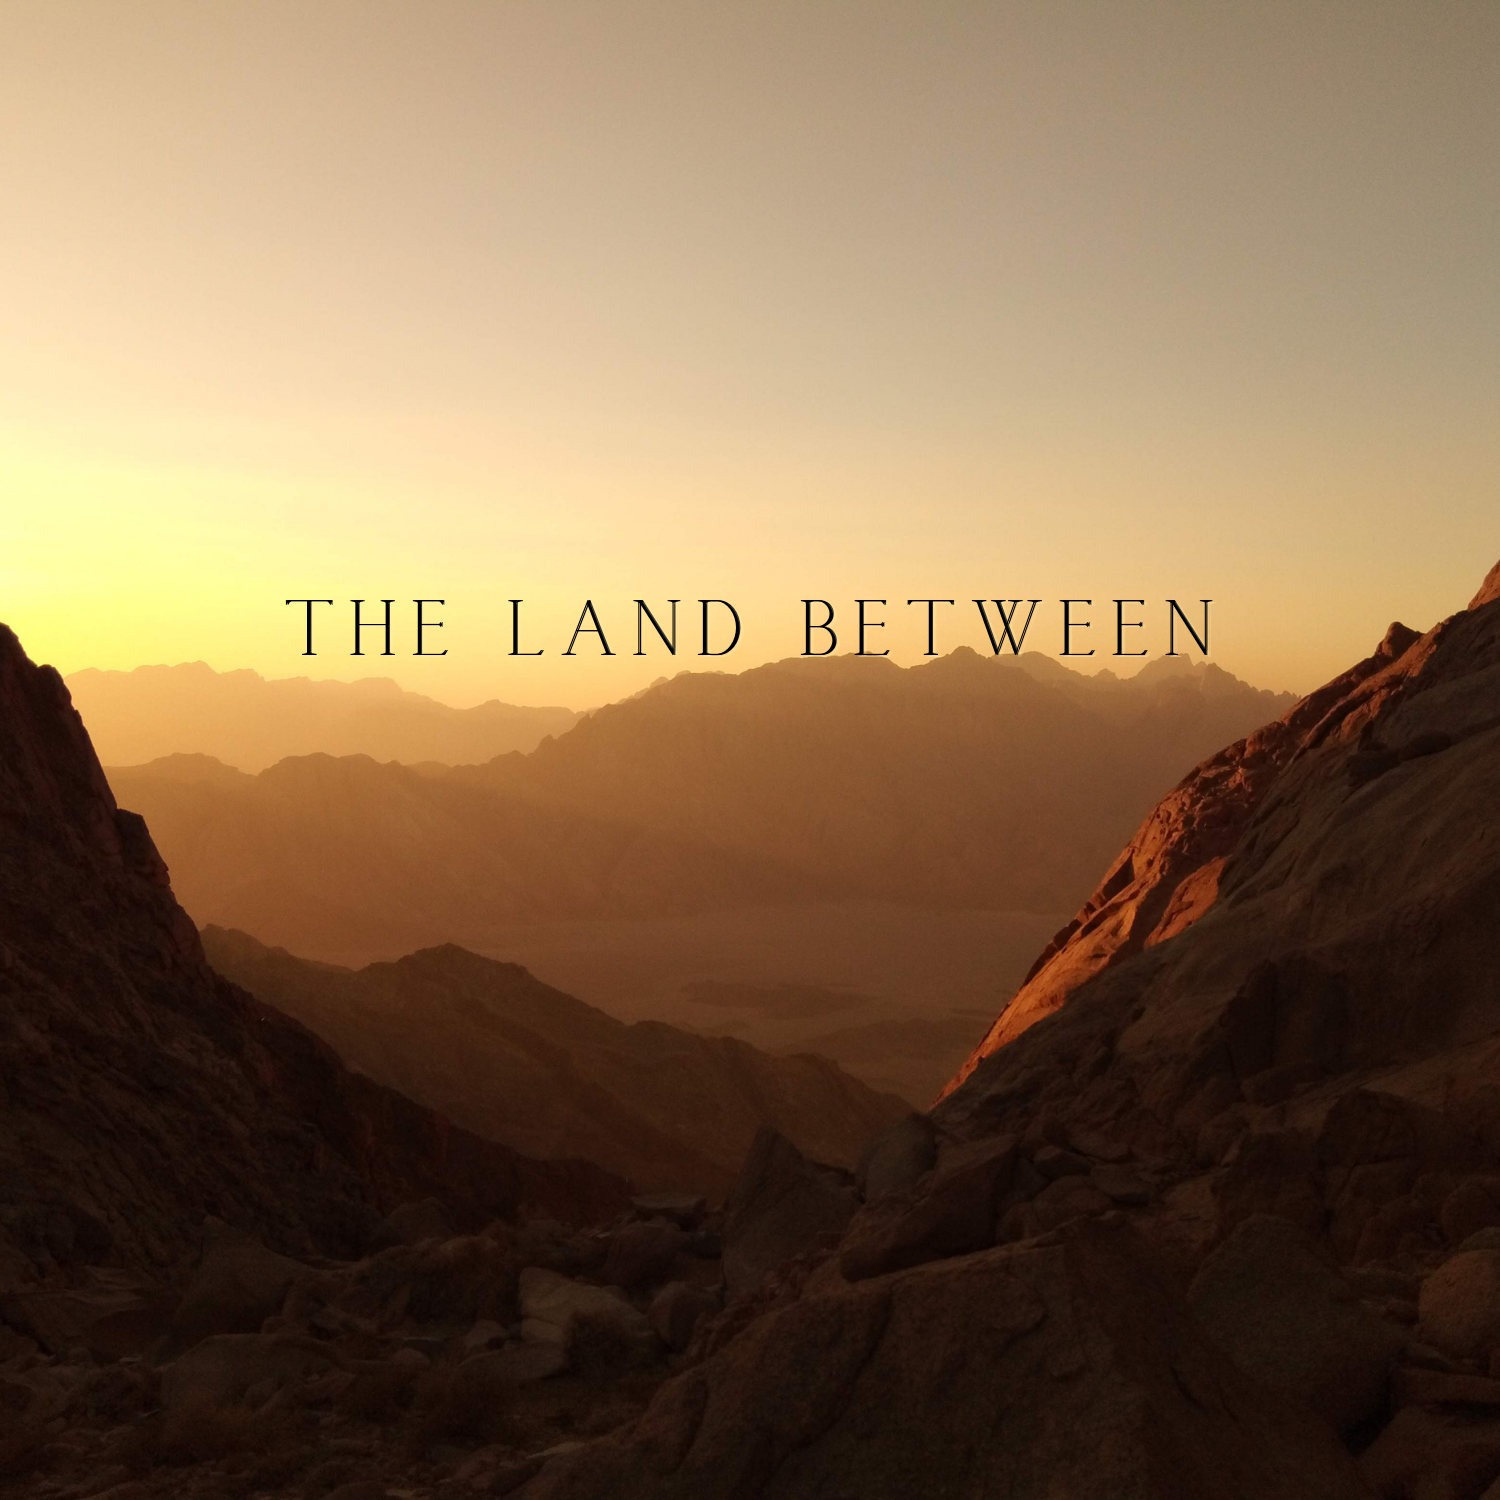 The Land Between